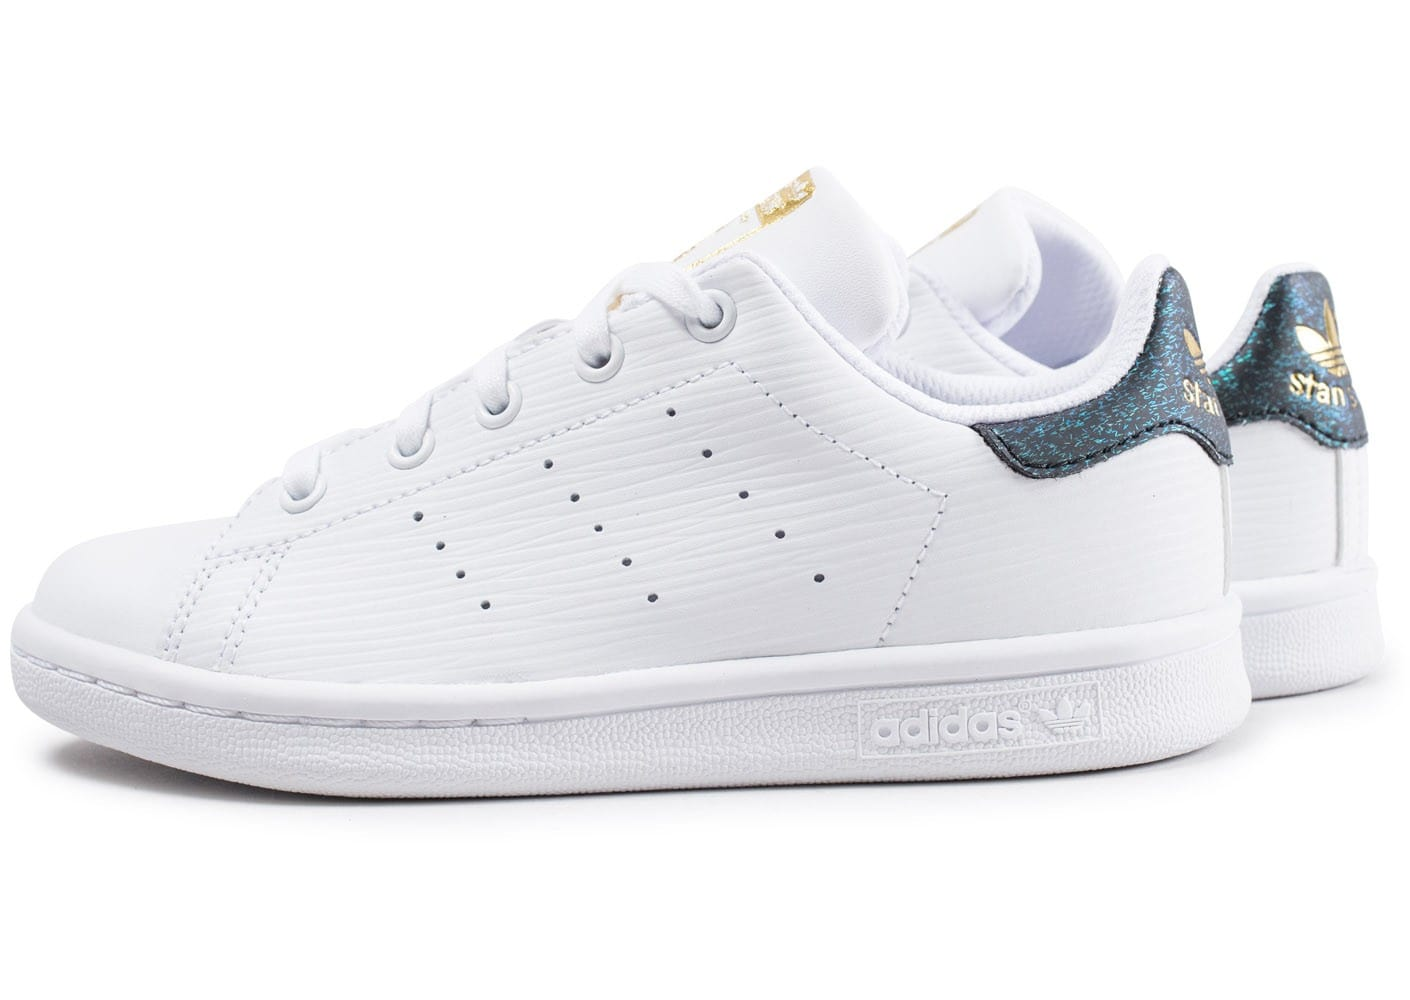 adidas stan smith enfant blanche et verte brillant. Black Bedroom Furniture Sets. Home Design Ideas